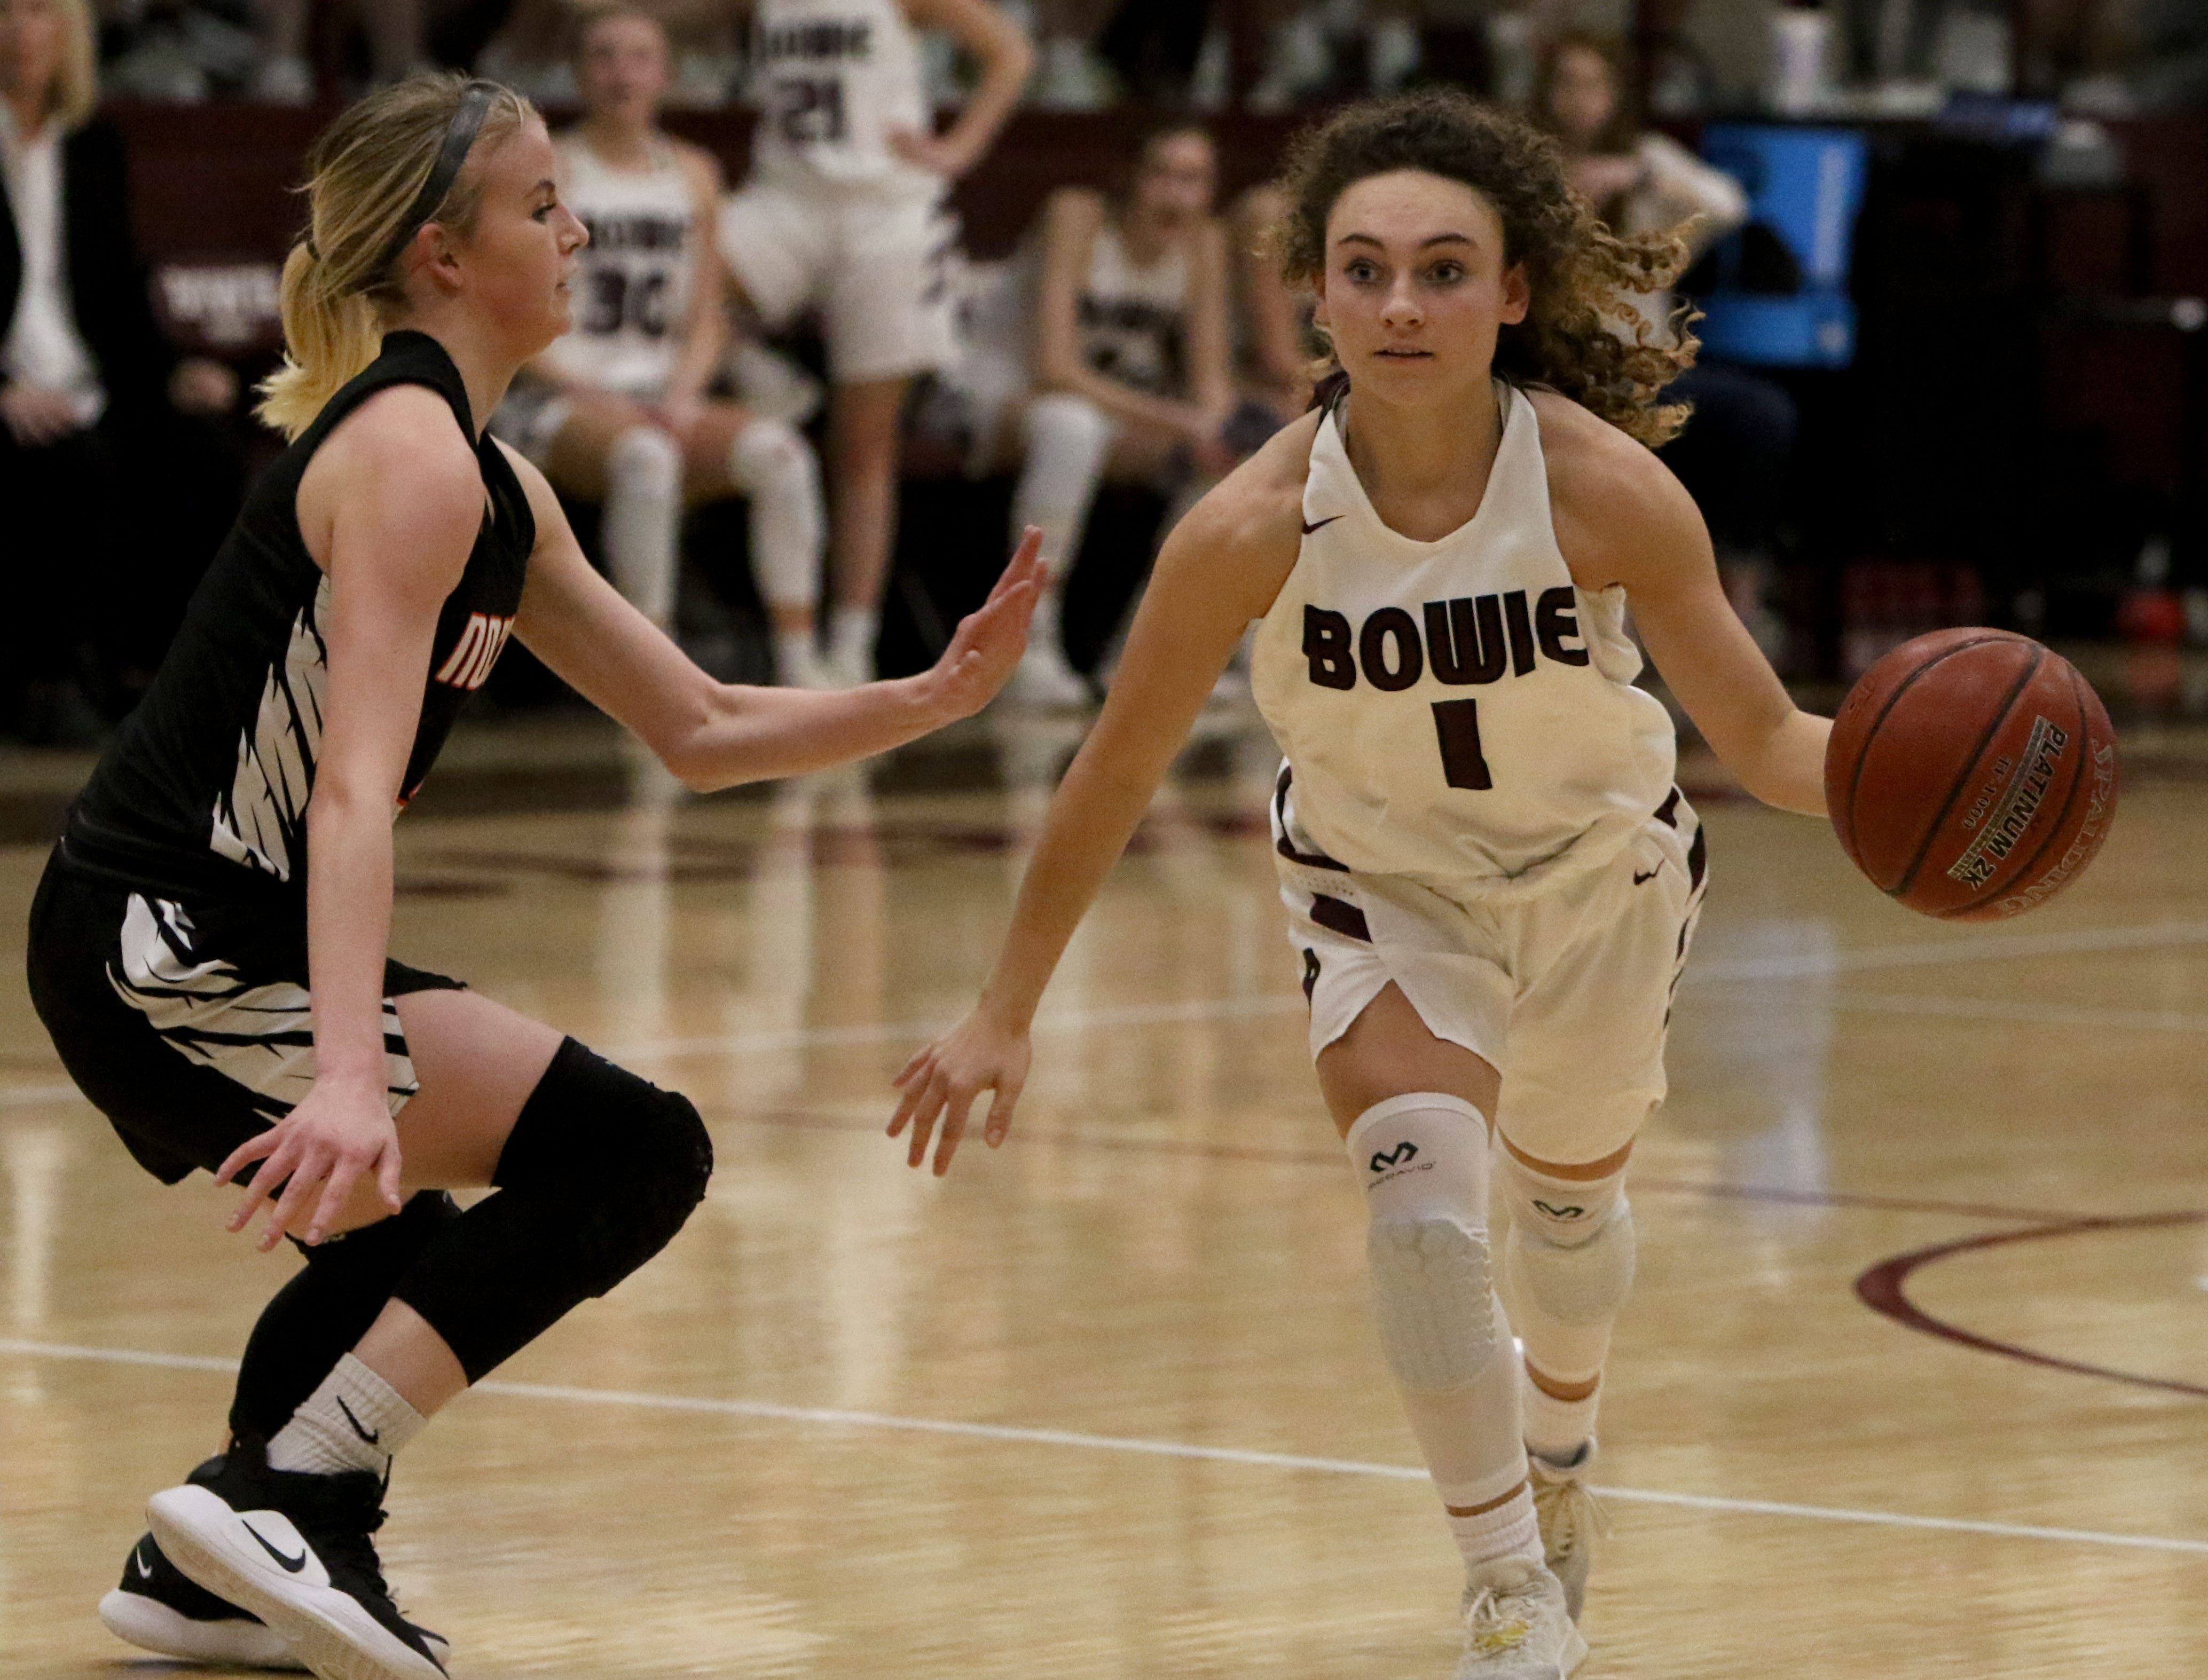 Bowie's Brysen Richey dribbles by Nocona's Chloe Daughtry Tuesday, Feb. 5, 2019, in Bowie. Nocona defeated Bowie 38-34.